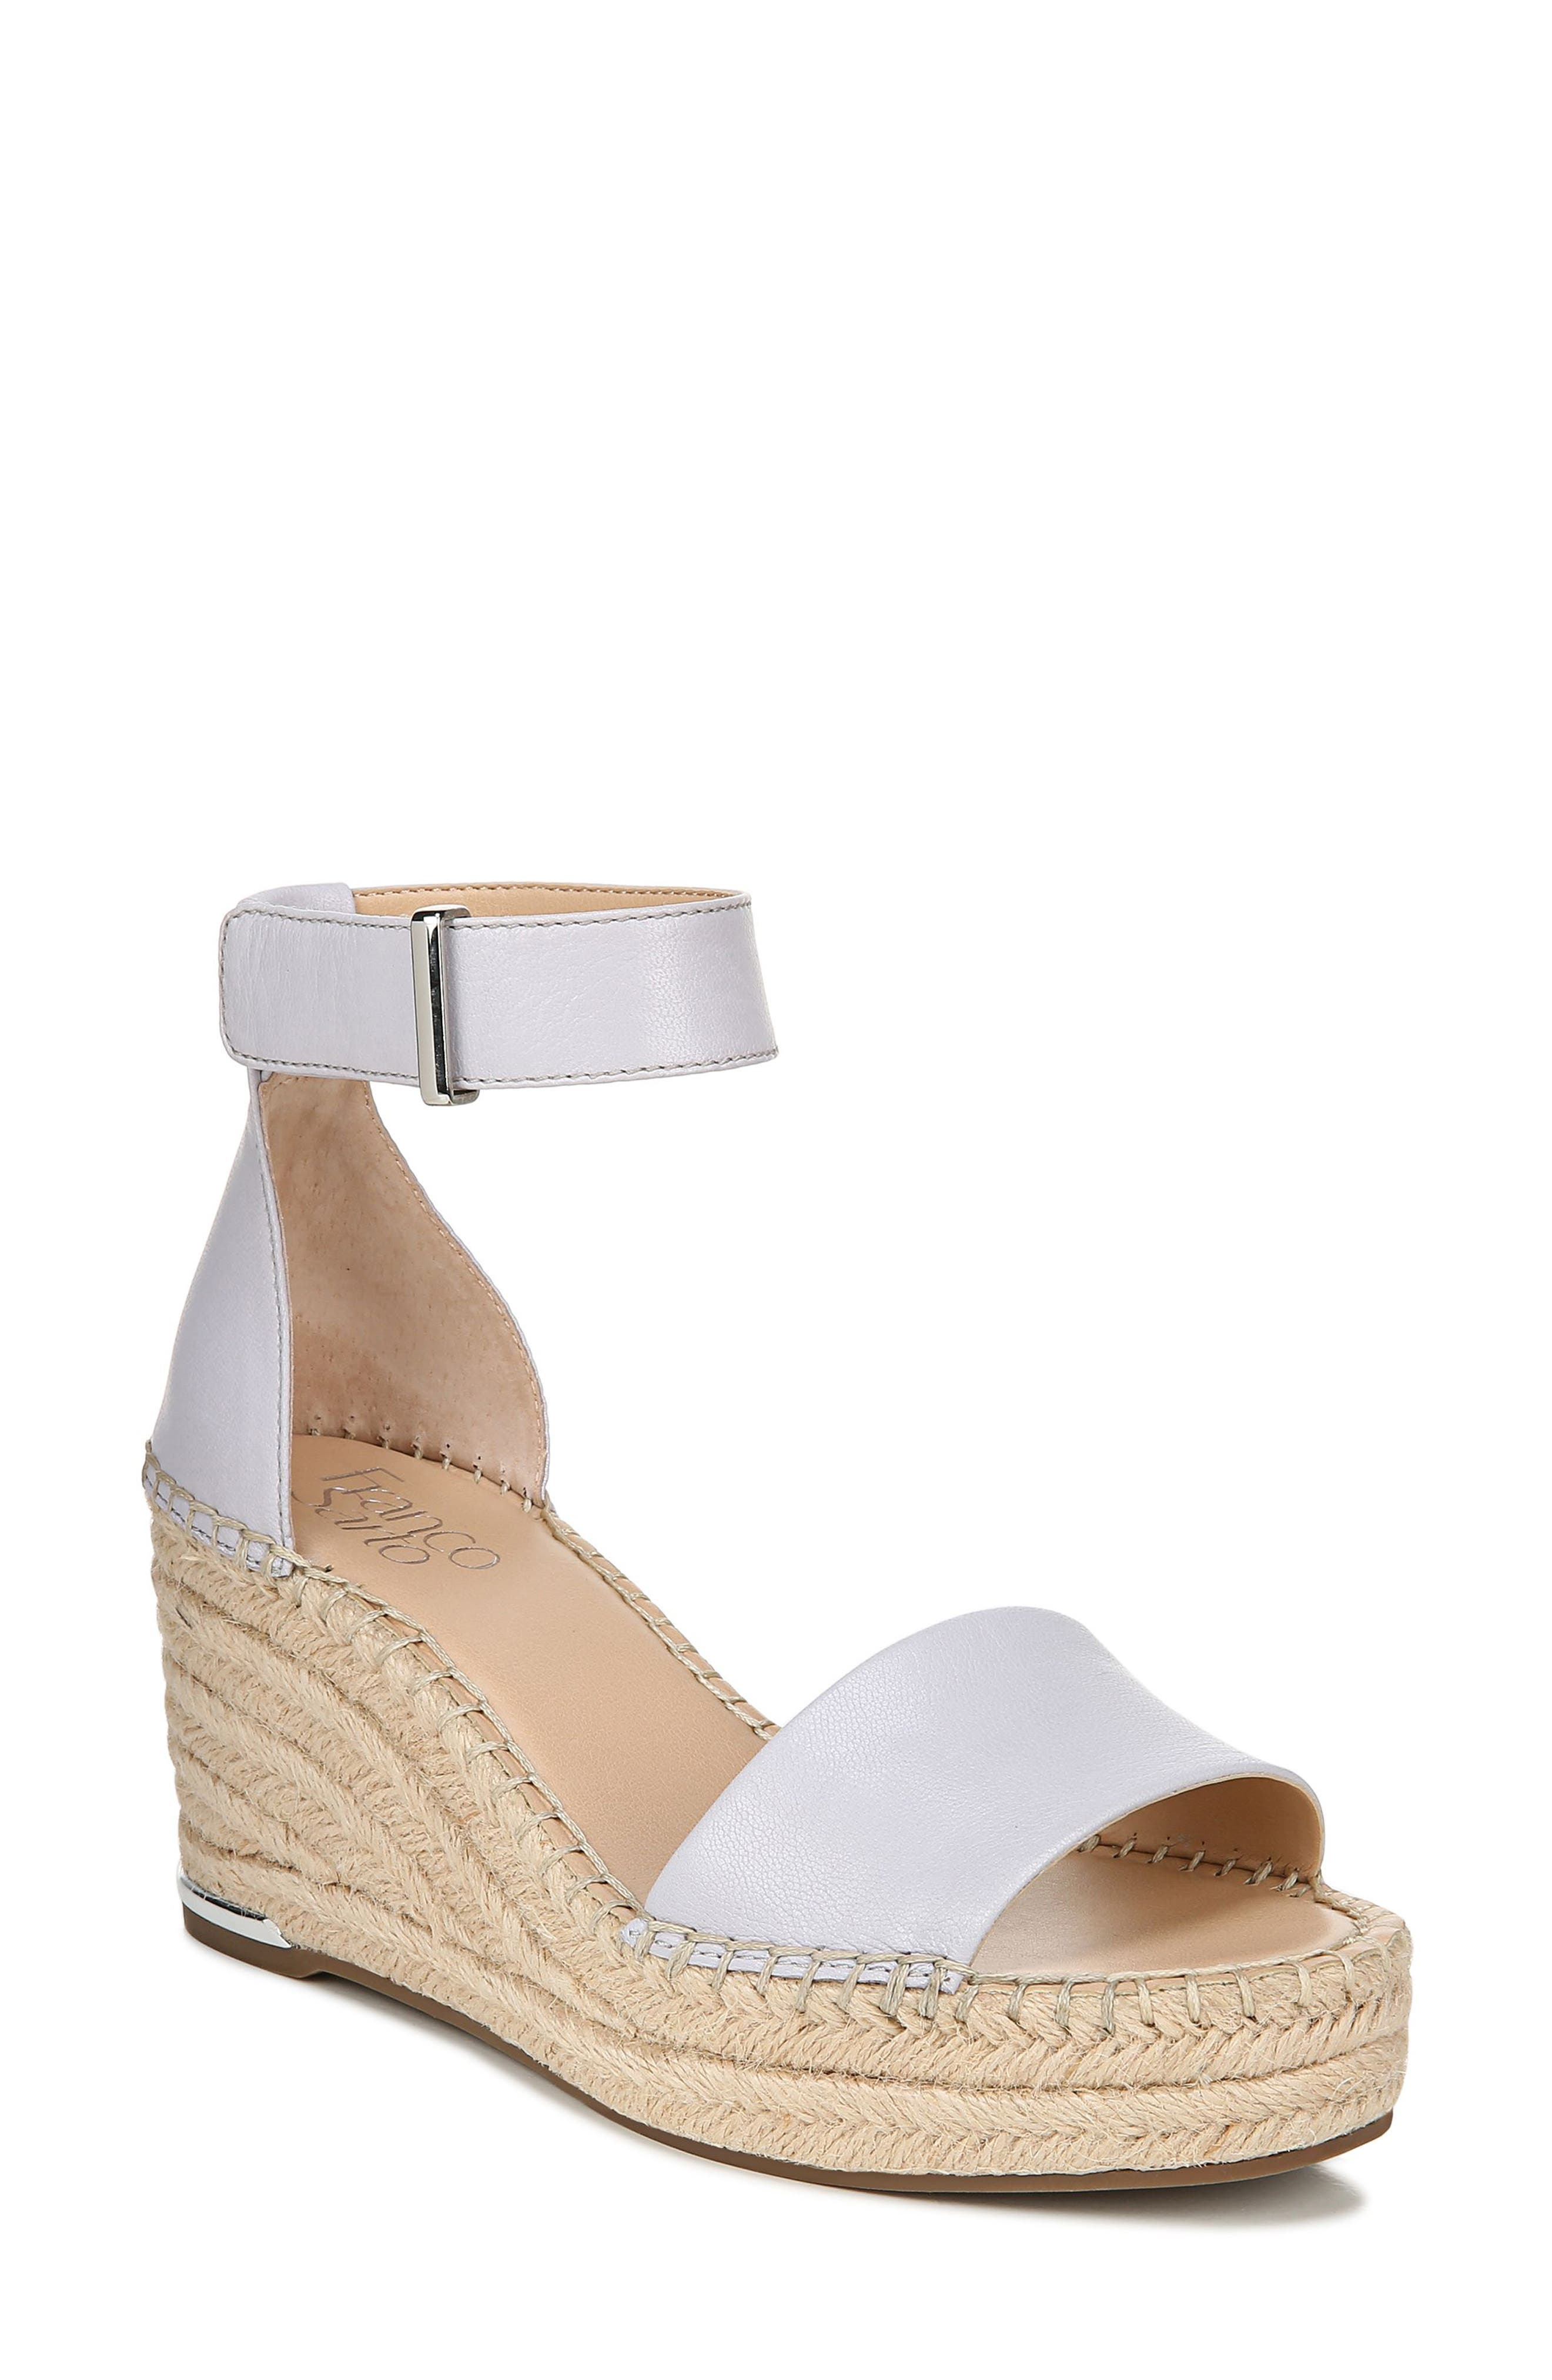 Whether you\\\'re heading for weekend brunch or an outdoor party, put your best foot forward in this espadrille-style wedge sandal. Style Name: Franco Sarto Clemens Espadrille Wedge Sandal (Women). Style Number: 6080323 3. Available in stores.